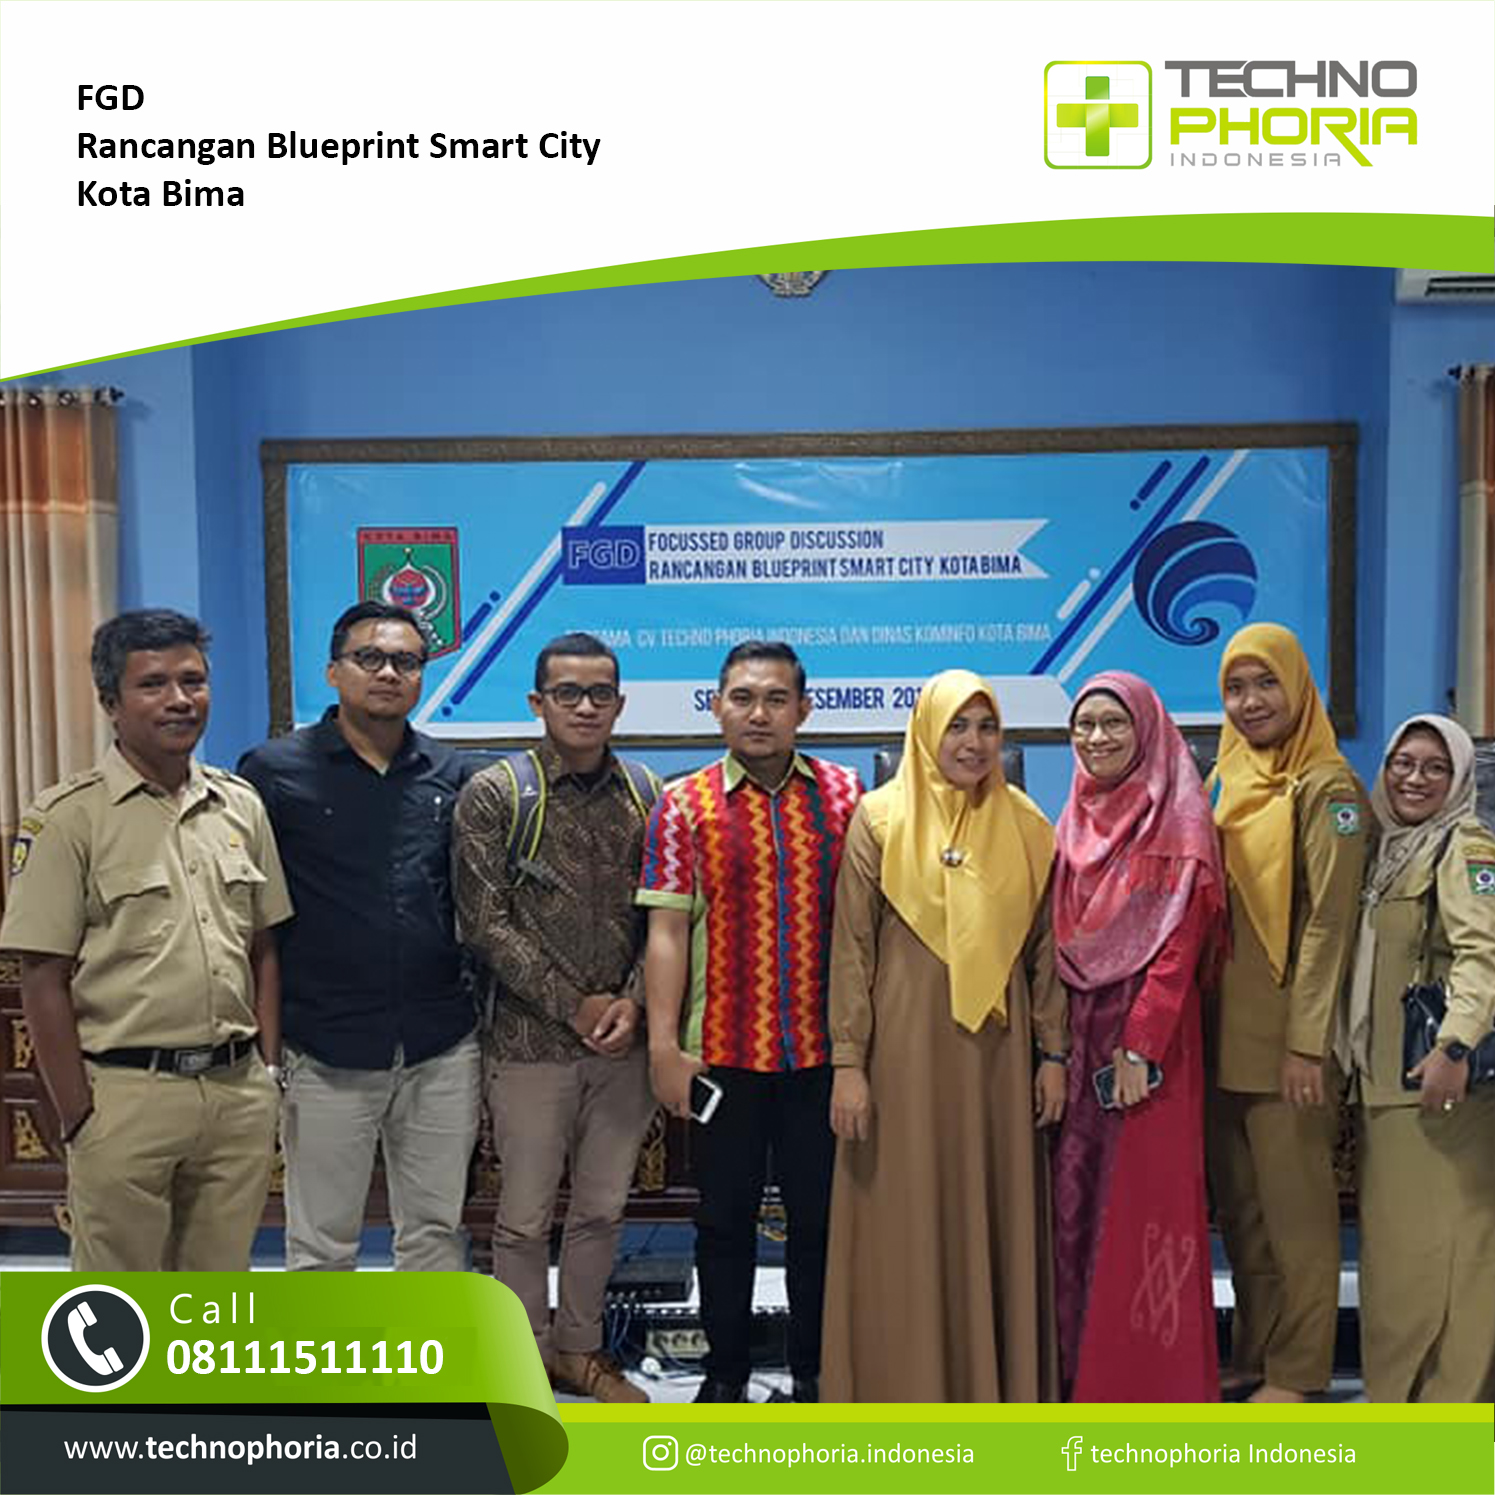 berita dan informasi kegiatan Technophoria Focus Group Discussion Rancangan Blueprint Smart City Kota Bima